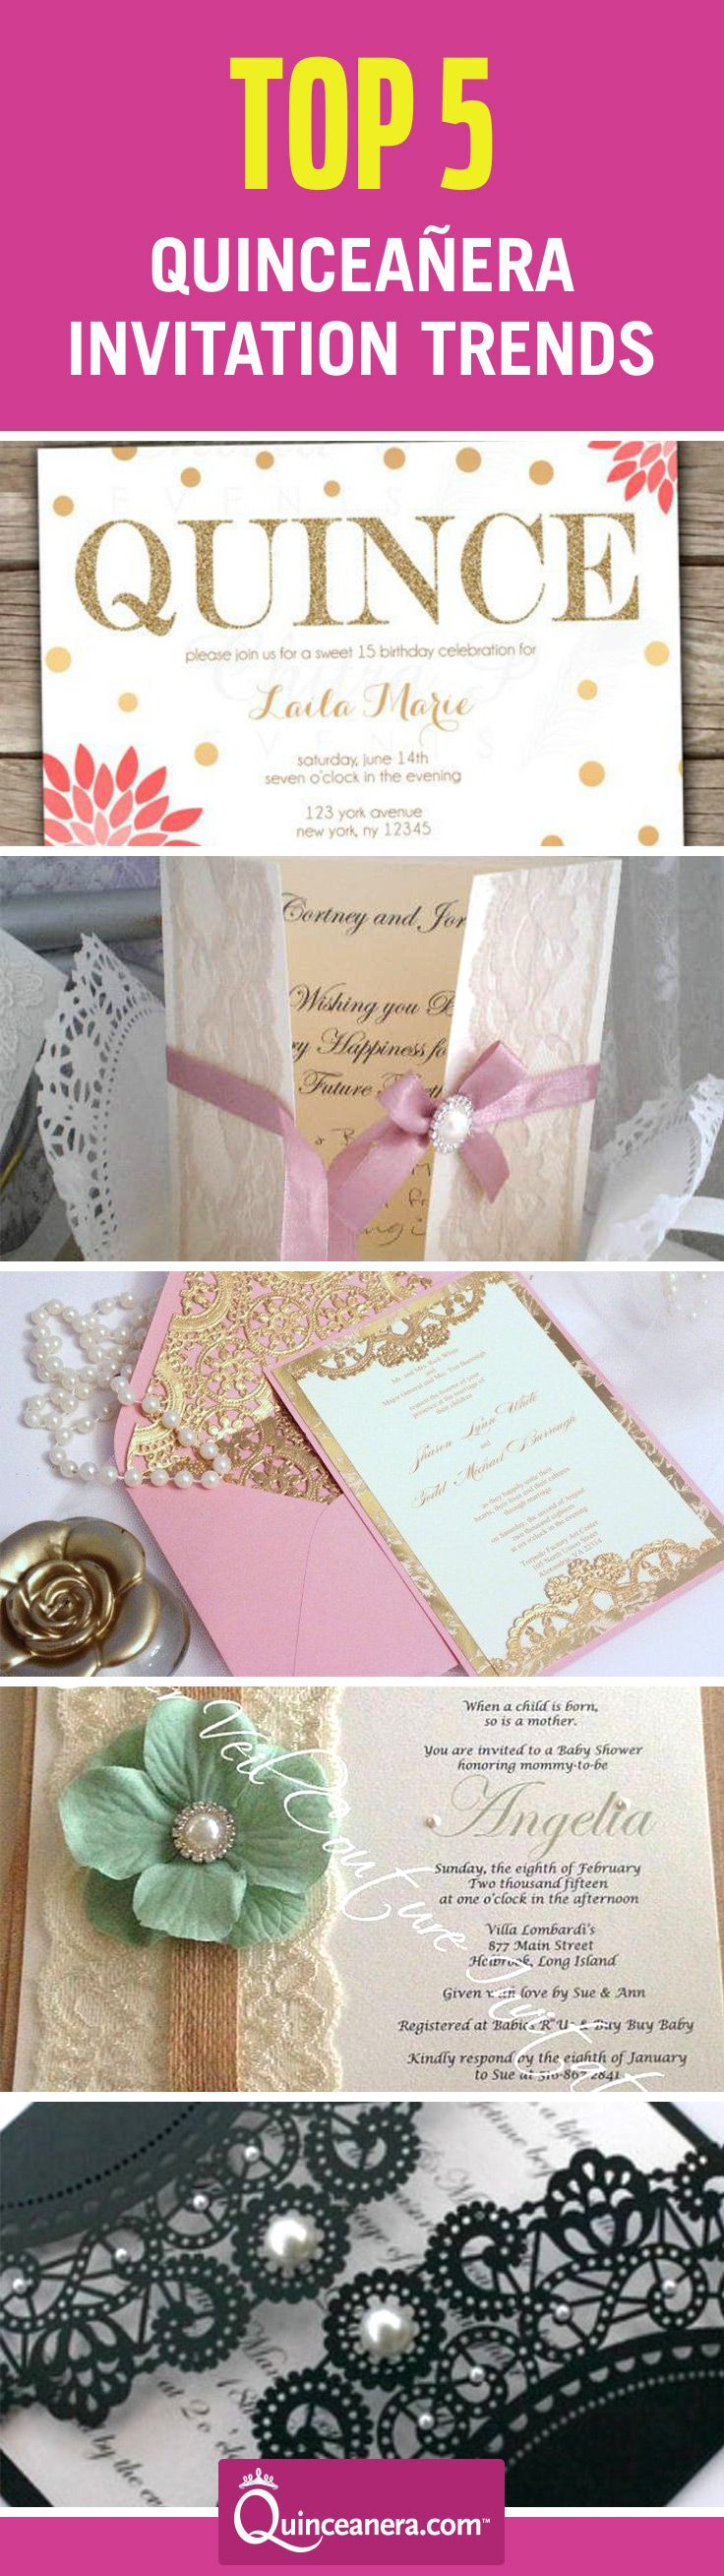 Here are the five most popular quinceañera invitation trends: - See more at: http://www.quinceanera.com/invitations/top-five-quinceanera-invitation-trends/?utm_source=pinterest&utm_medium=social&utm_campaign=article-122215-invitations-top-five-quinceanera-invitation-trends#sthash.uJW5xOfZ.dpuf